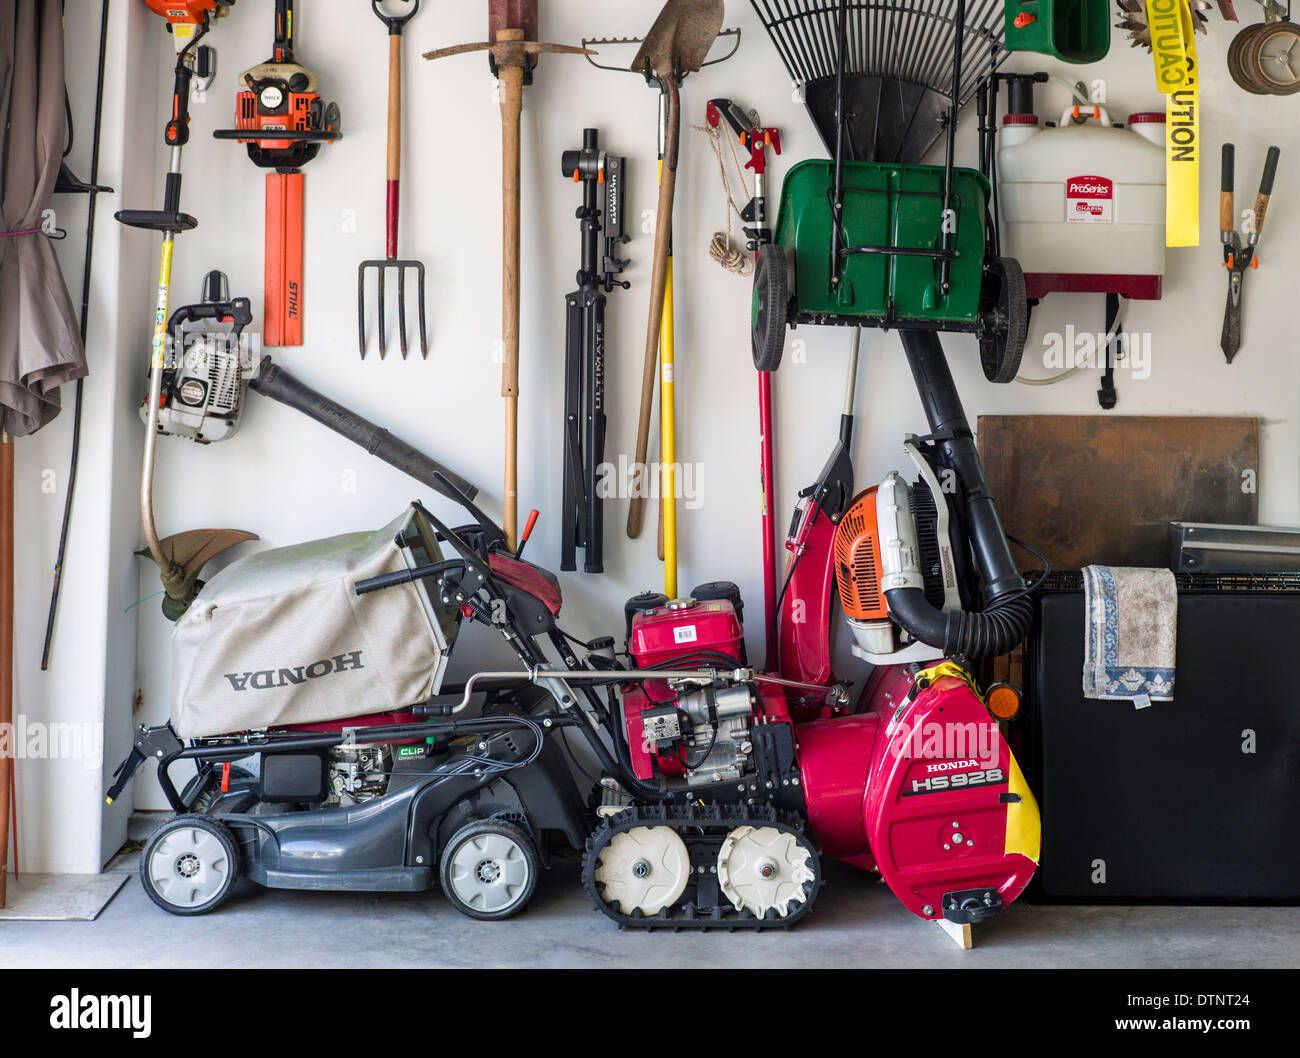 Garden tools and equipment inside residential garage - Stock Image